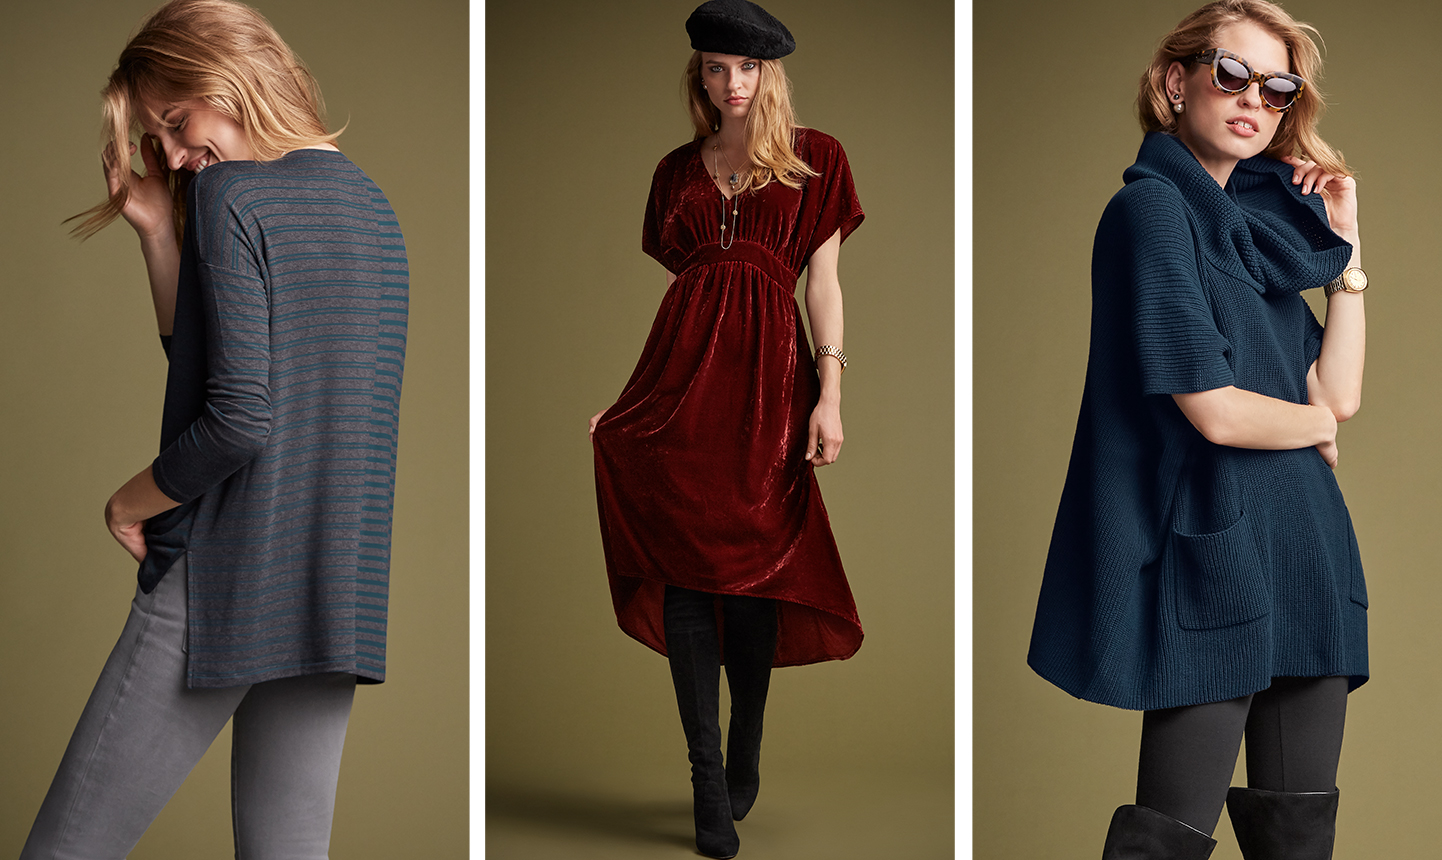 807848e03f91 introducing grace: 12 new arrival styles to add to your winter wardrobe